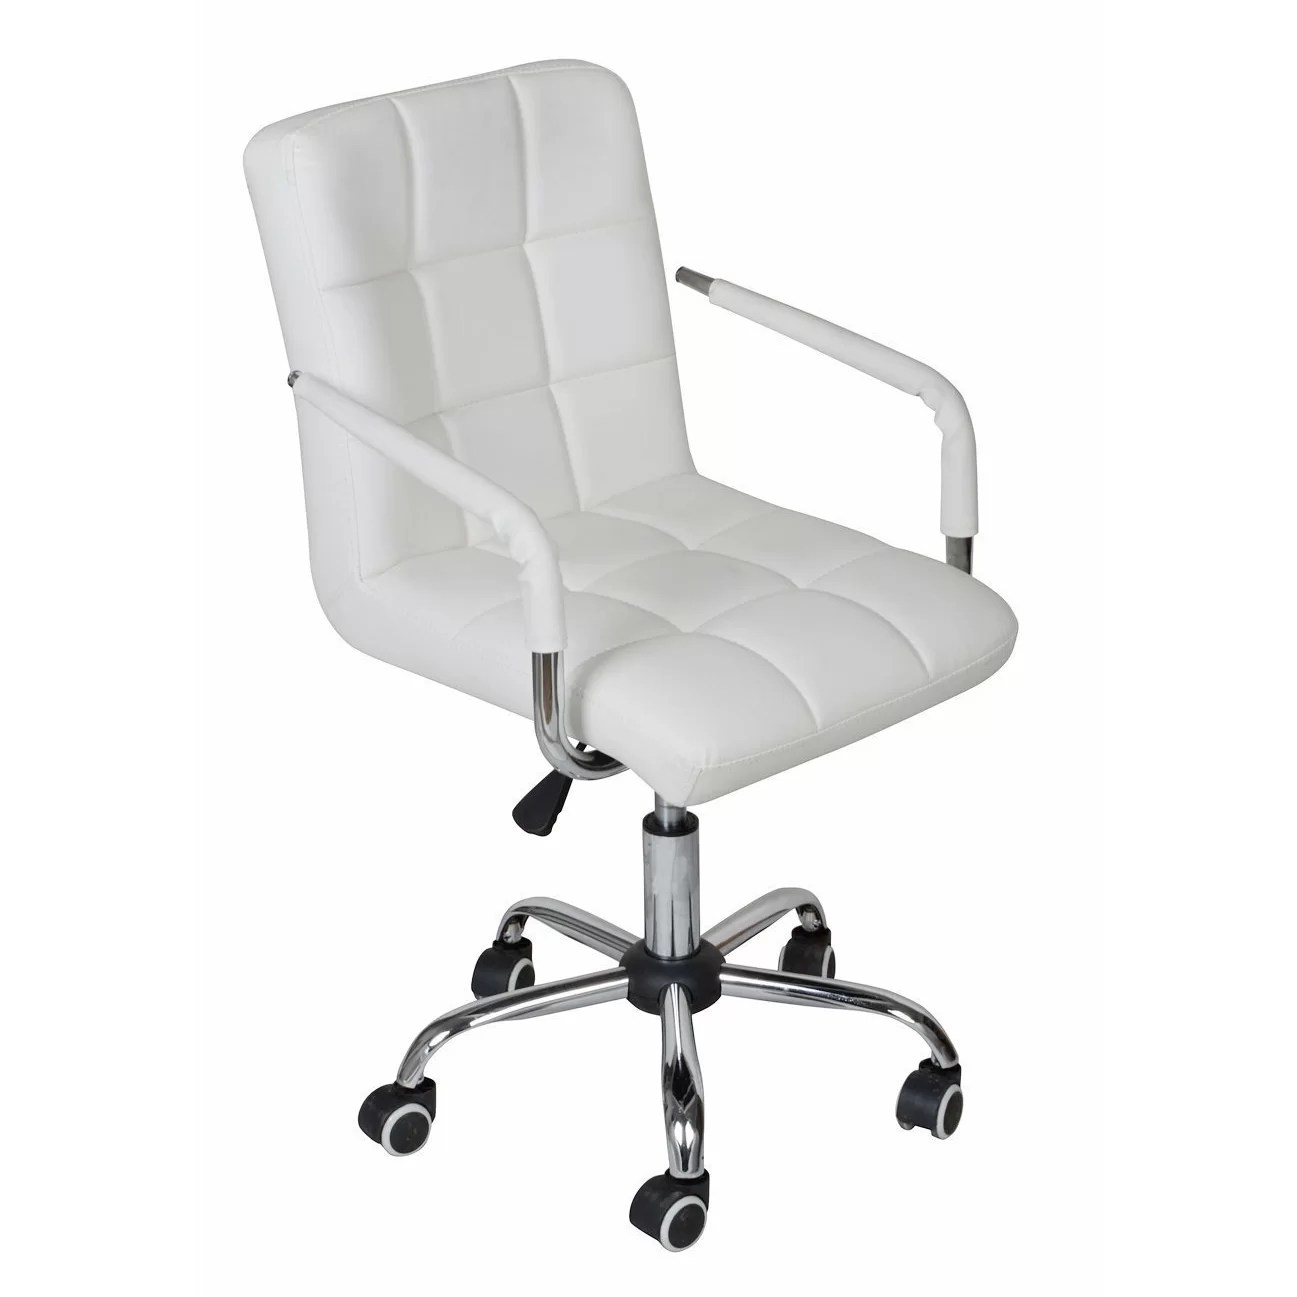 Calhome Adjustable Rolling Office Chair  Reviews  Wayfairca